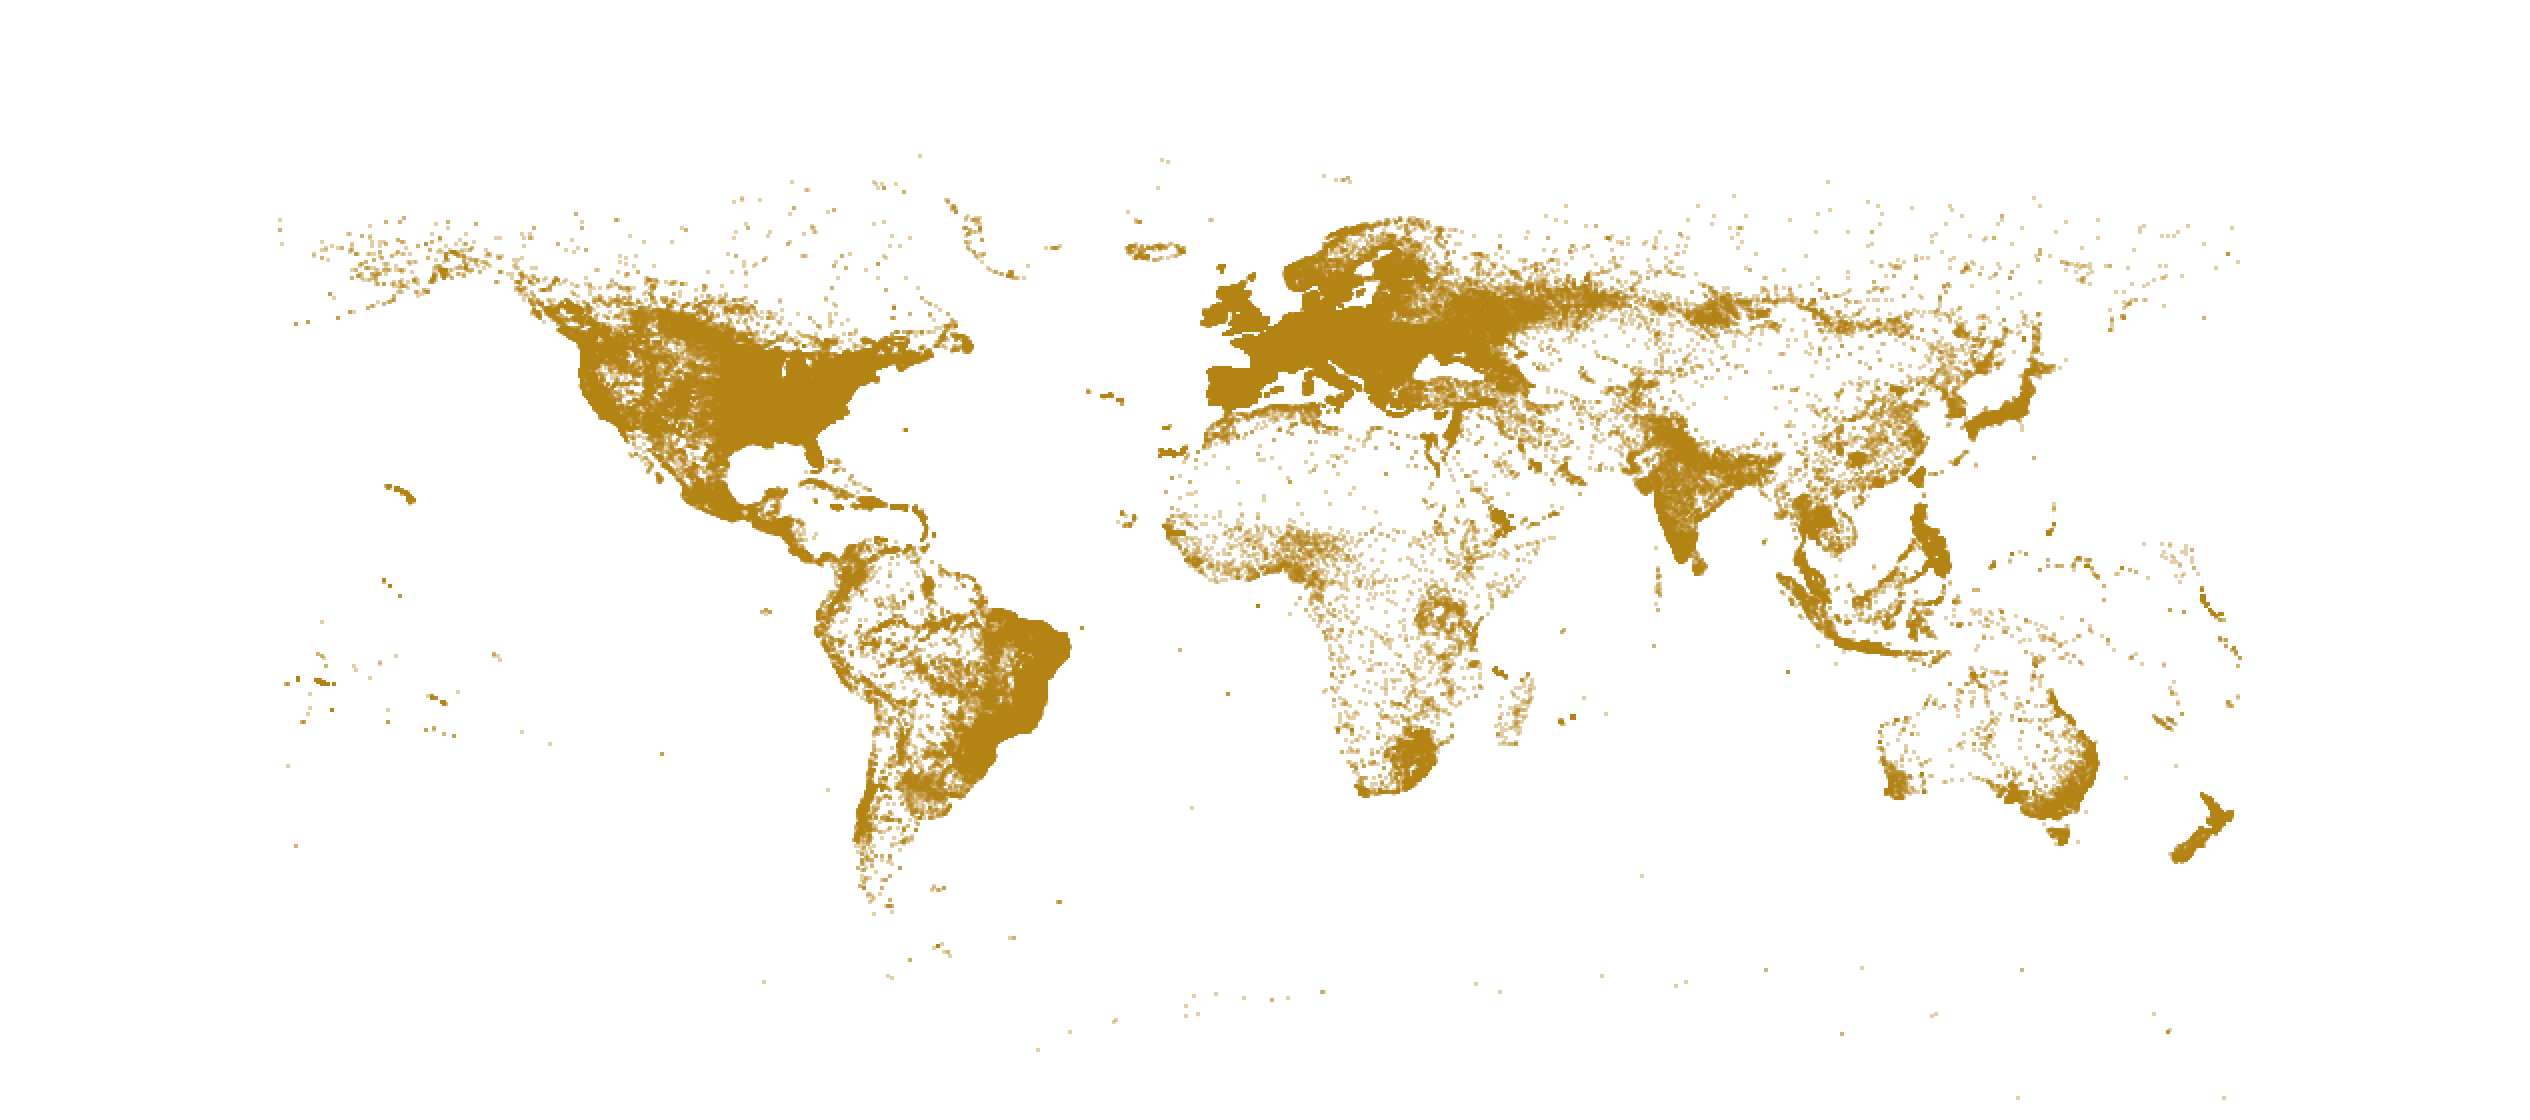 World map in brown, less dots